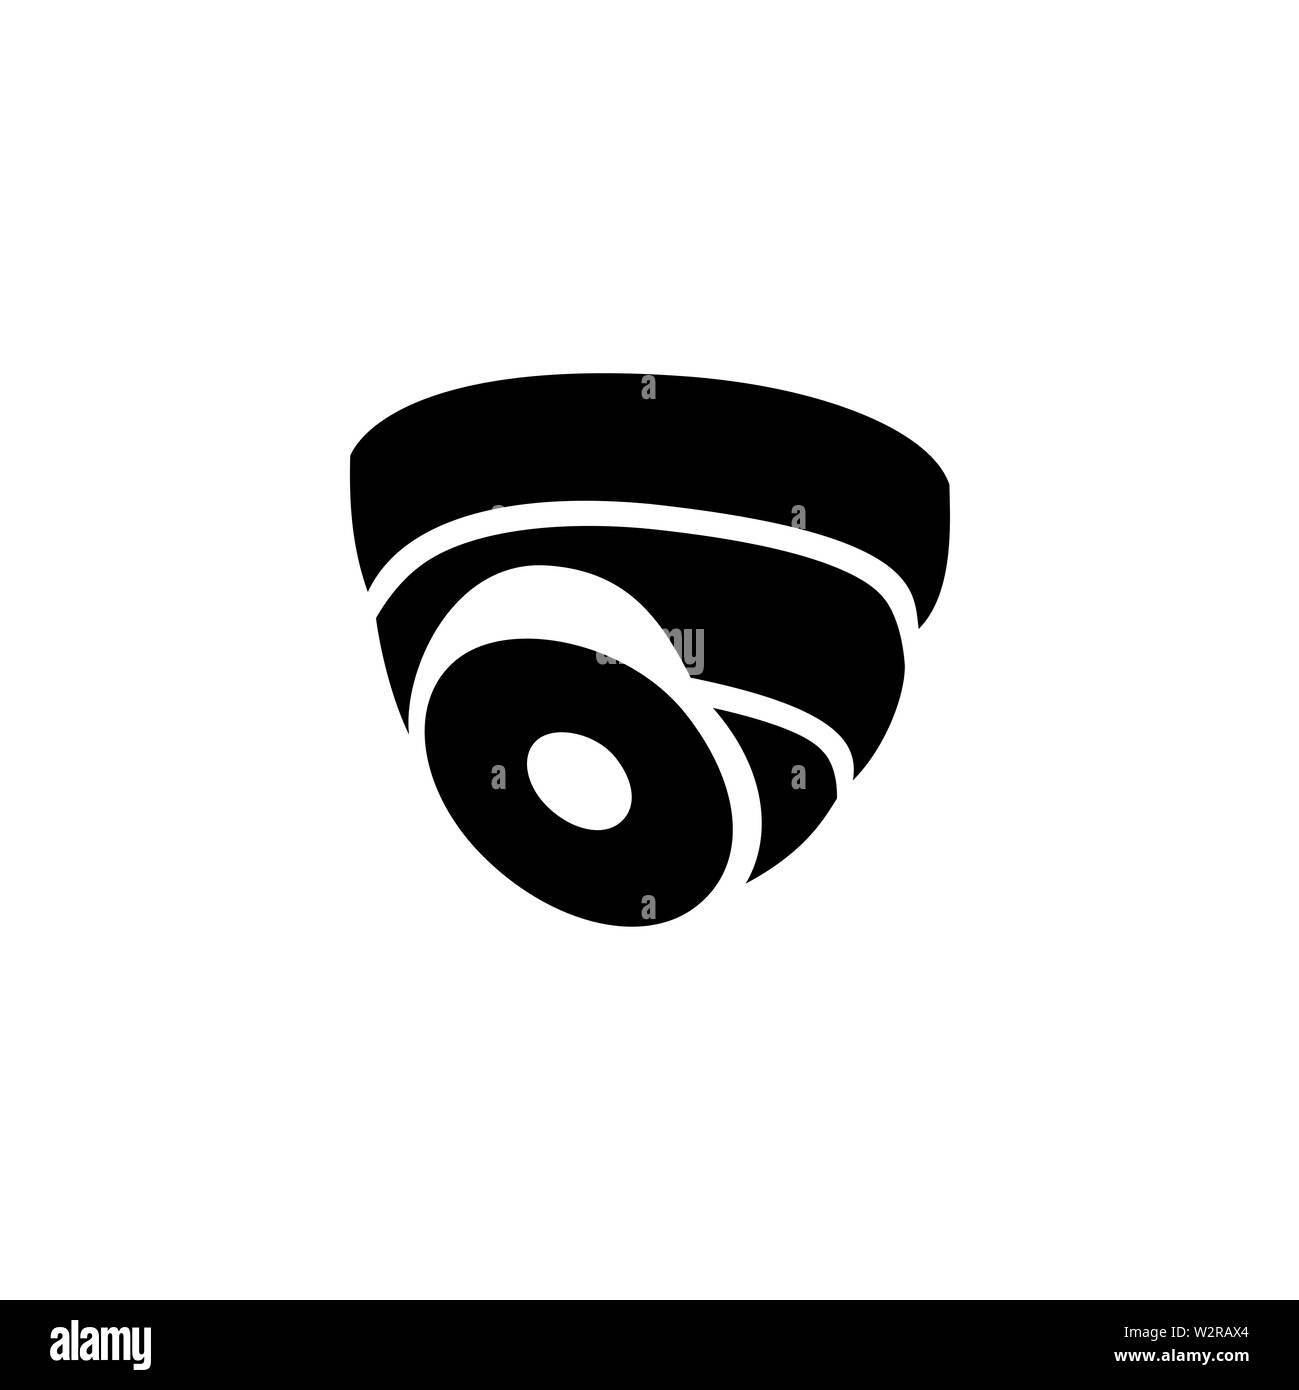 Security Camera Dome Icon In Flat Style Vector For Apps, UI, Websites. Black Icon Vector Illustration. - Stock Image